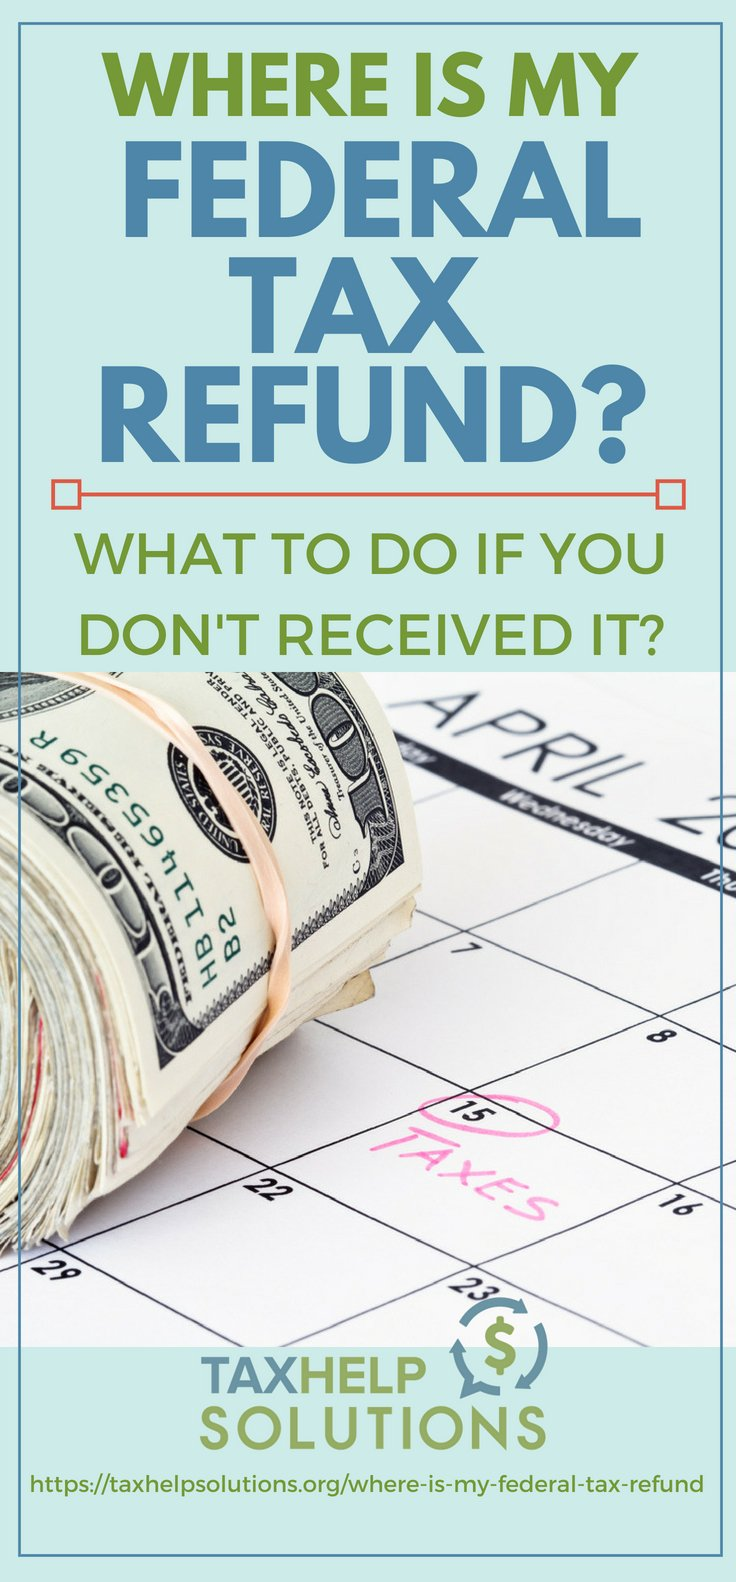 Pinterest Placard | Where Is My Federal Tax Refund? What To Do If You Don't Receive It